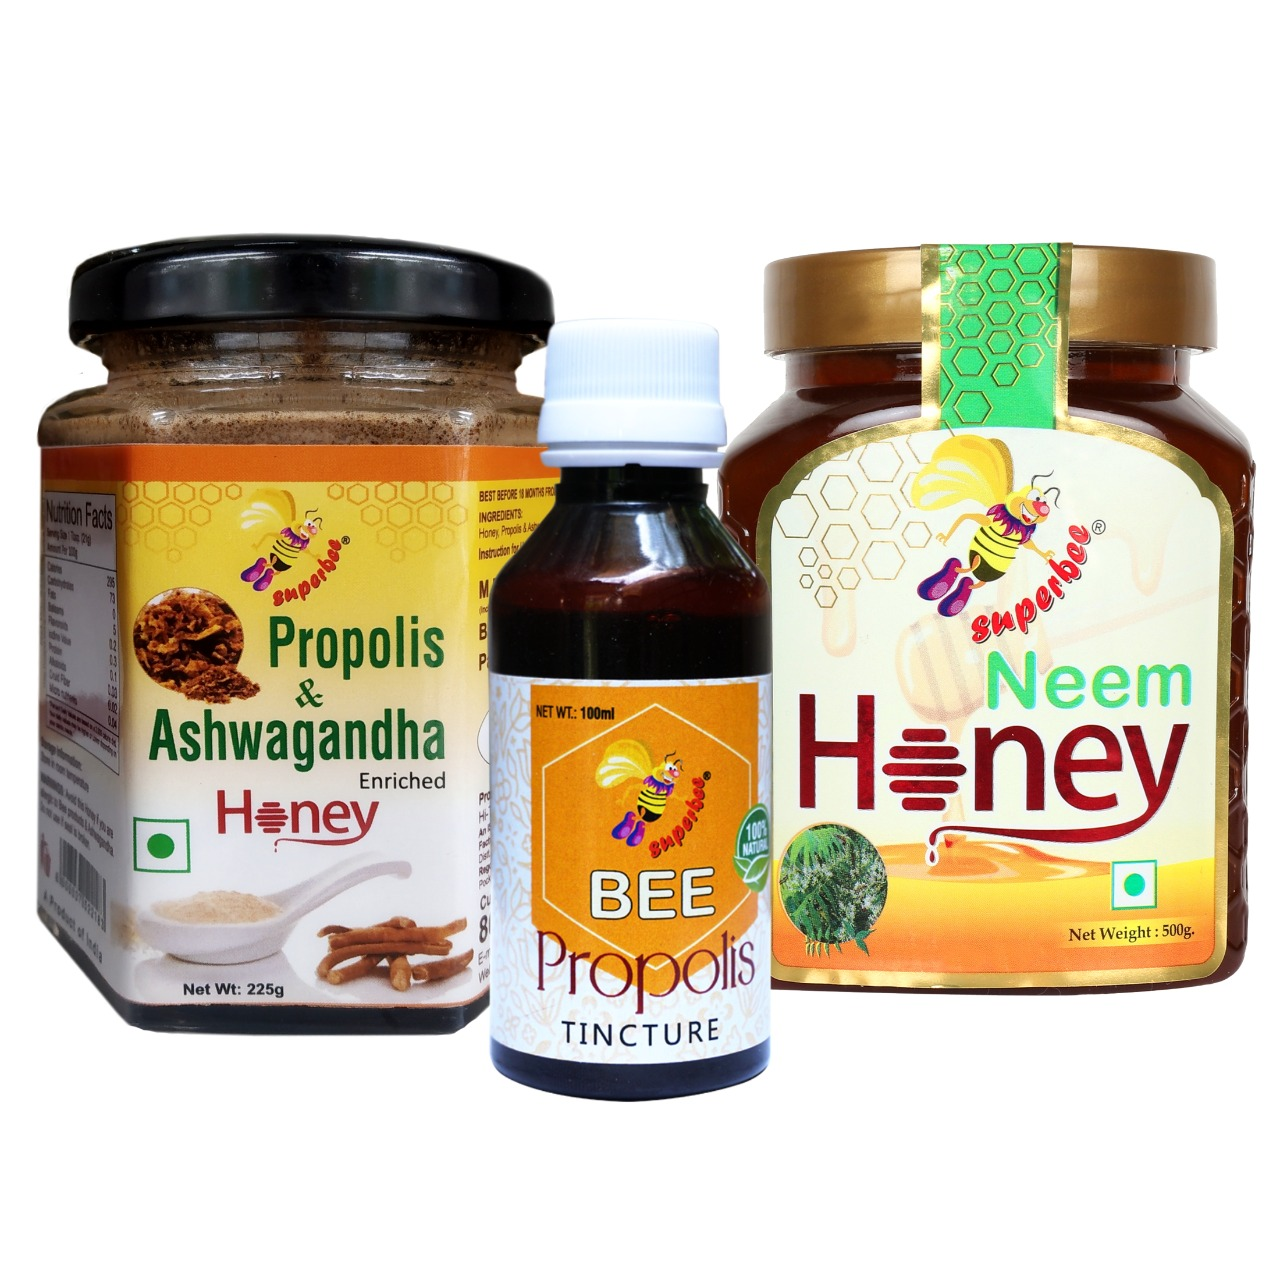 Combo Of Propolis & Ashwagandha Enriched Honey, 225g, Bee Propolis Tincture, 100ml And Neem Honey, 500g